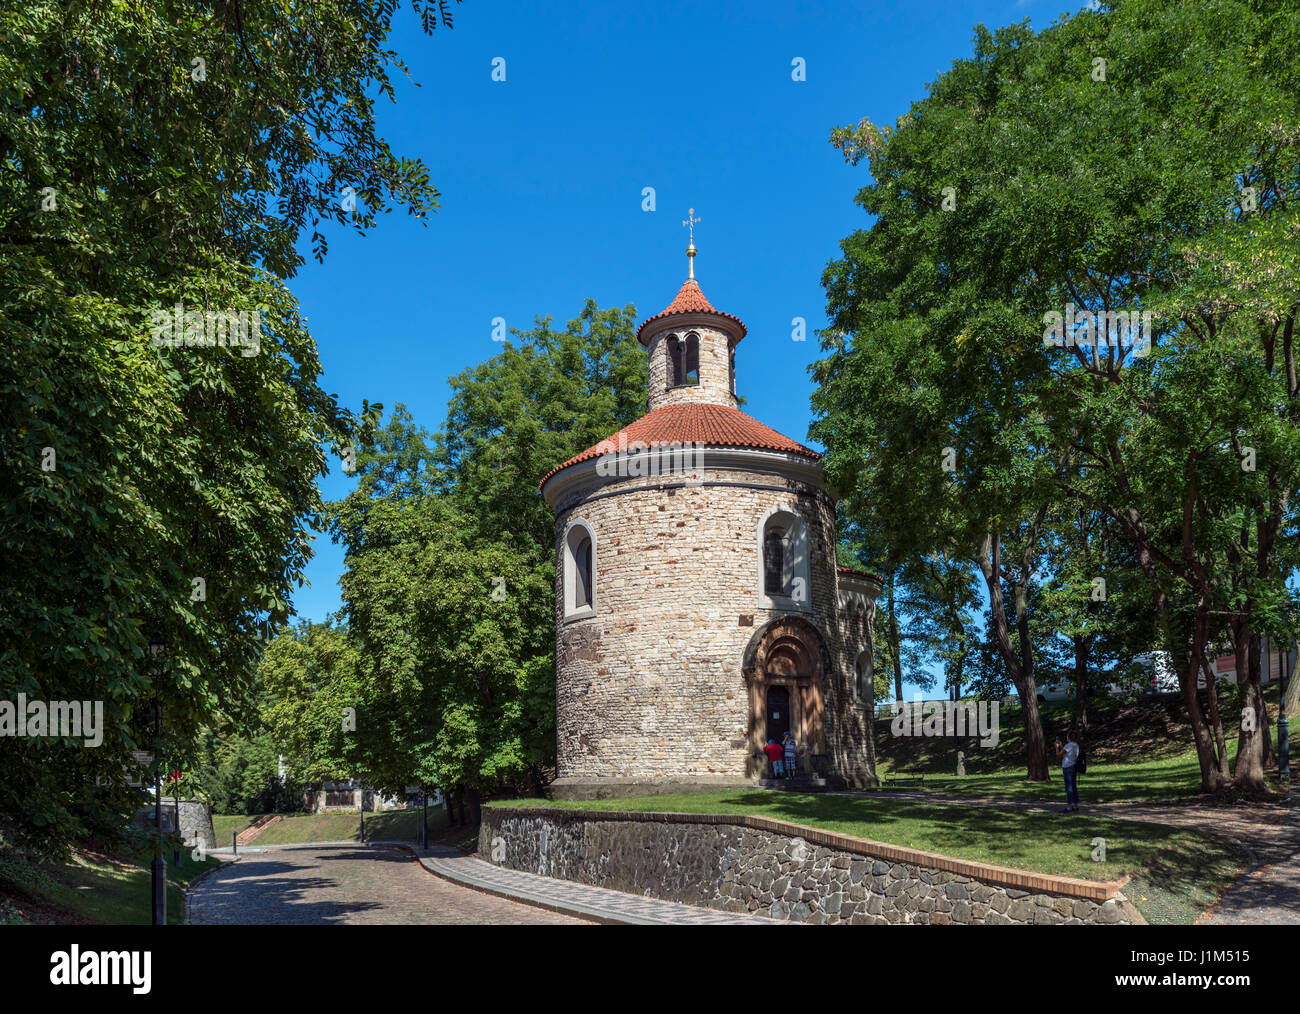 The 11th century Rotunda of St Martin, considered to be Prague's oldest surviving building, Vysehrad Citadel, - Stock Image